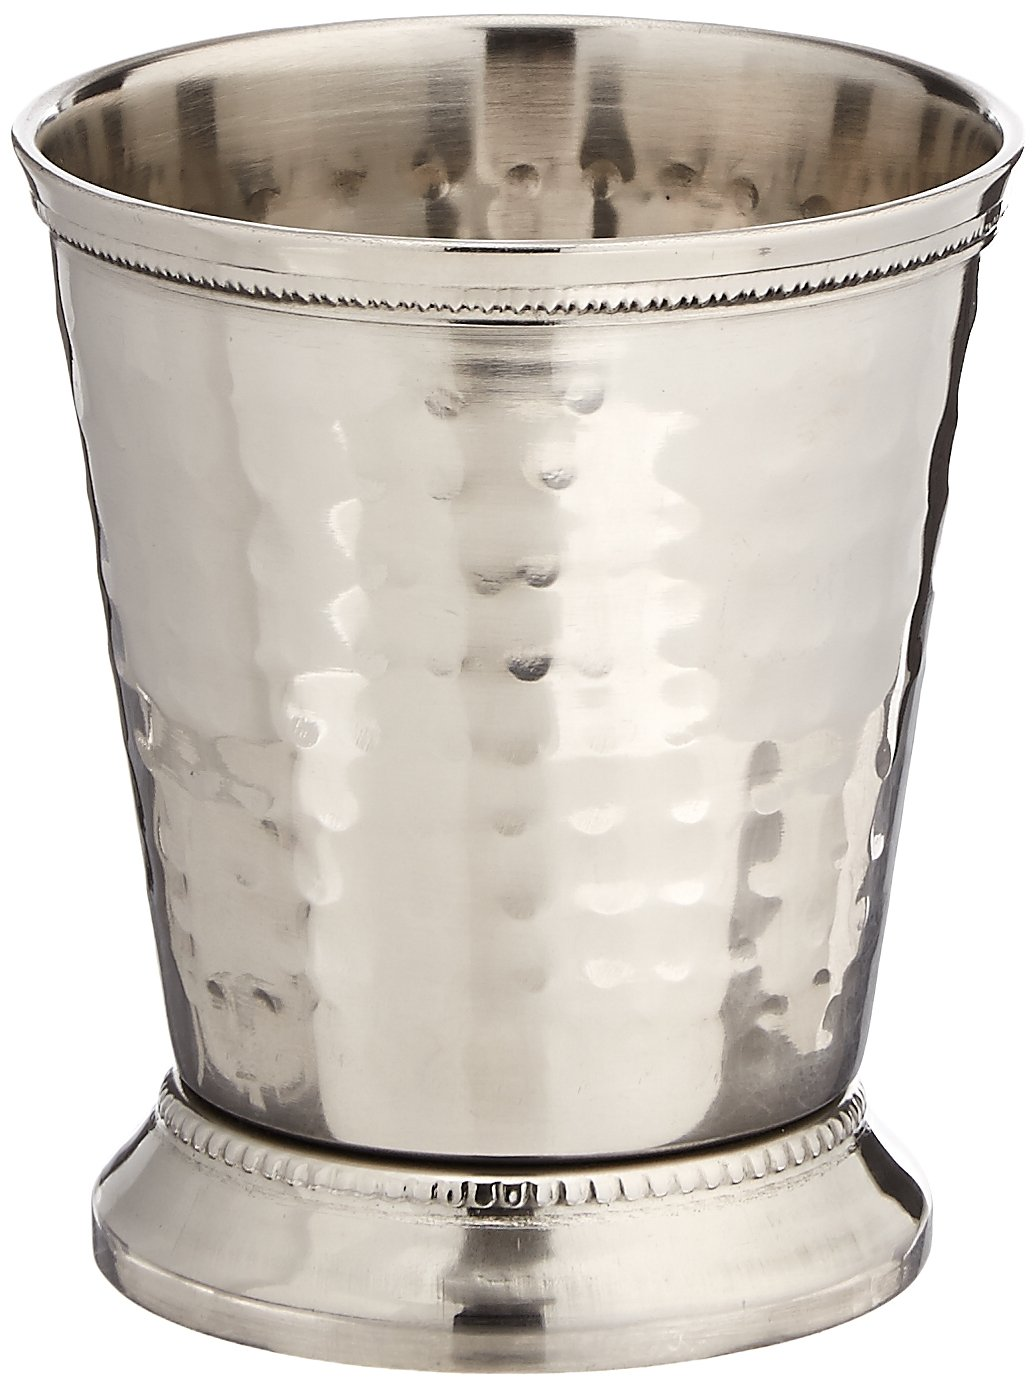 Elegance 10 oz Hammered Mint Julep Cup, Medium, Silver